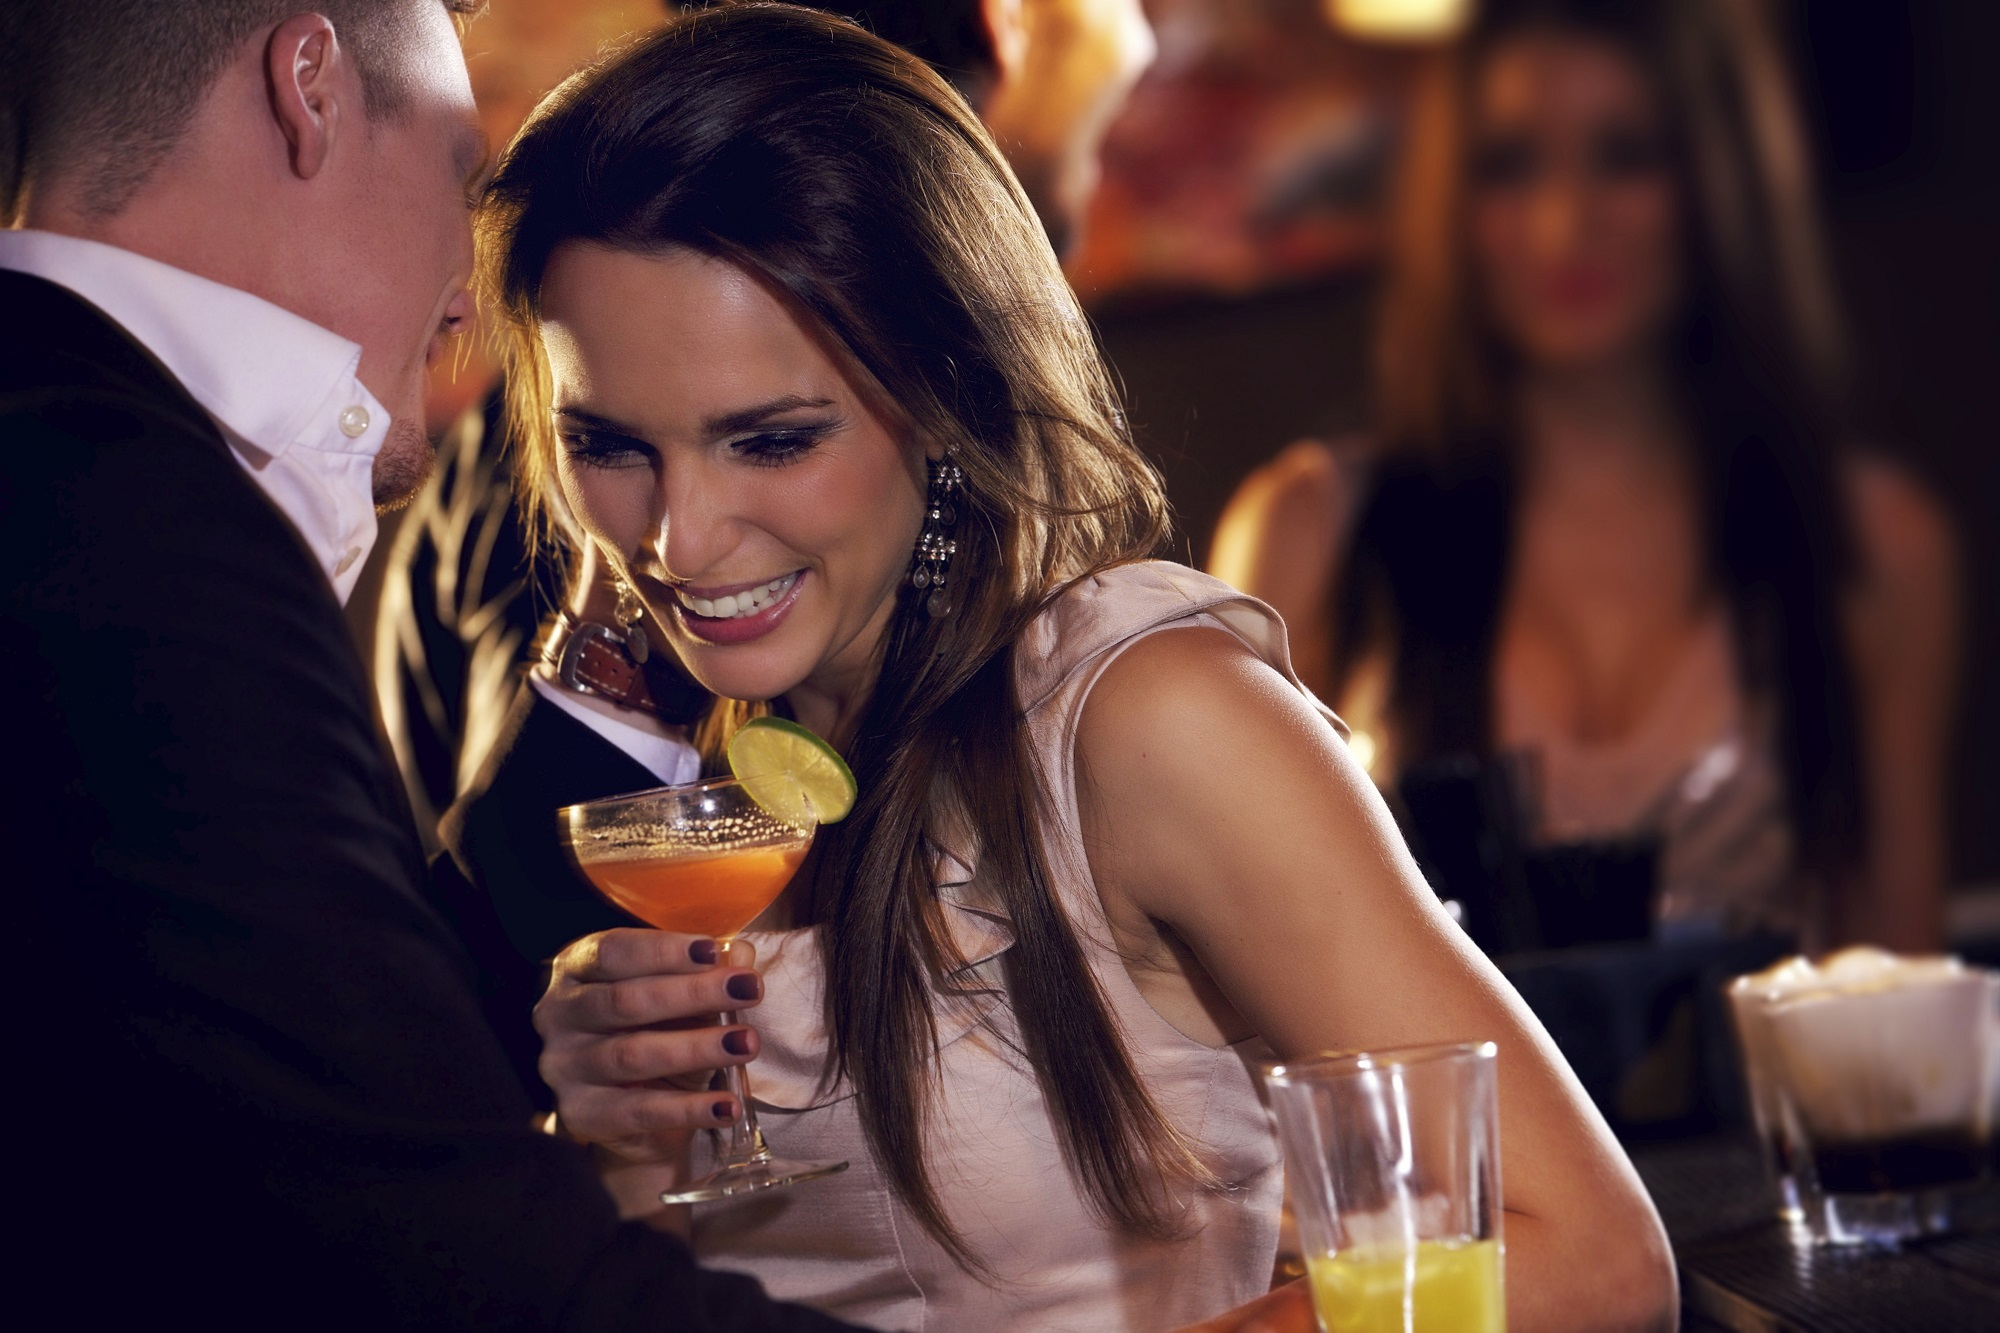 Flirting Could Categories You From Romantic And Cute To Full On Creepy  It's Really Hard To Master The Art Of Flirting, But It's Doable When You  Know How To